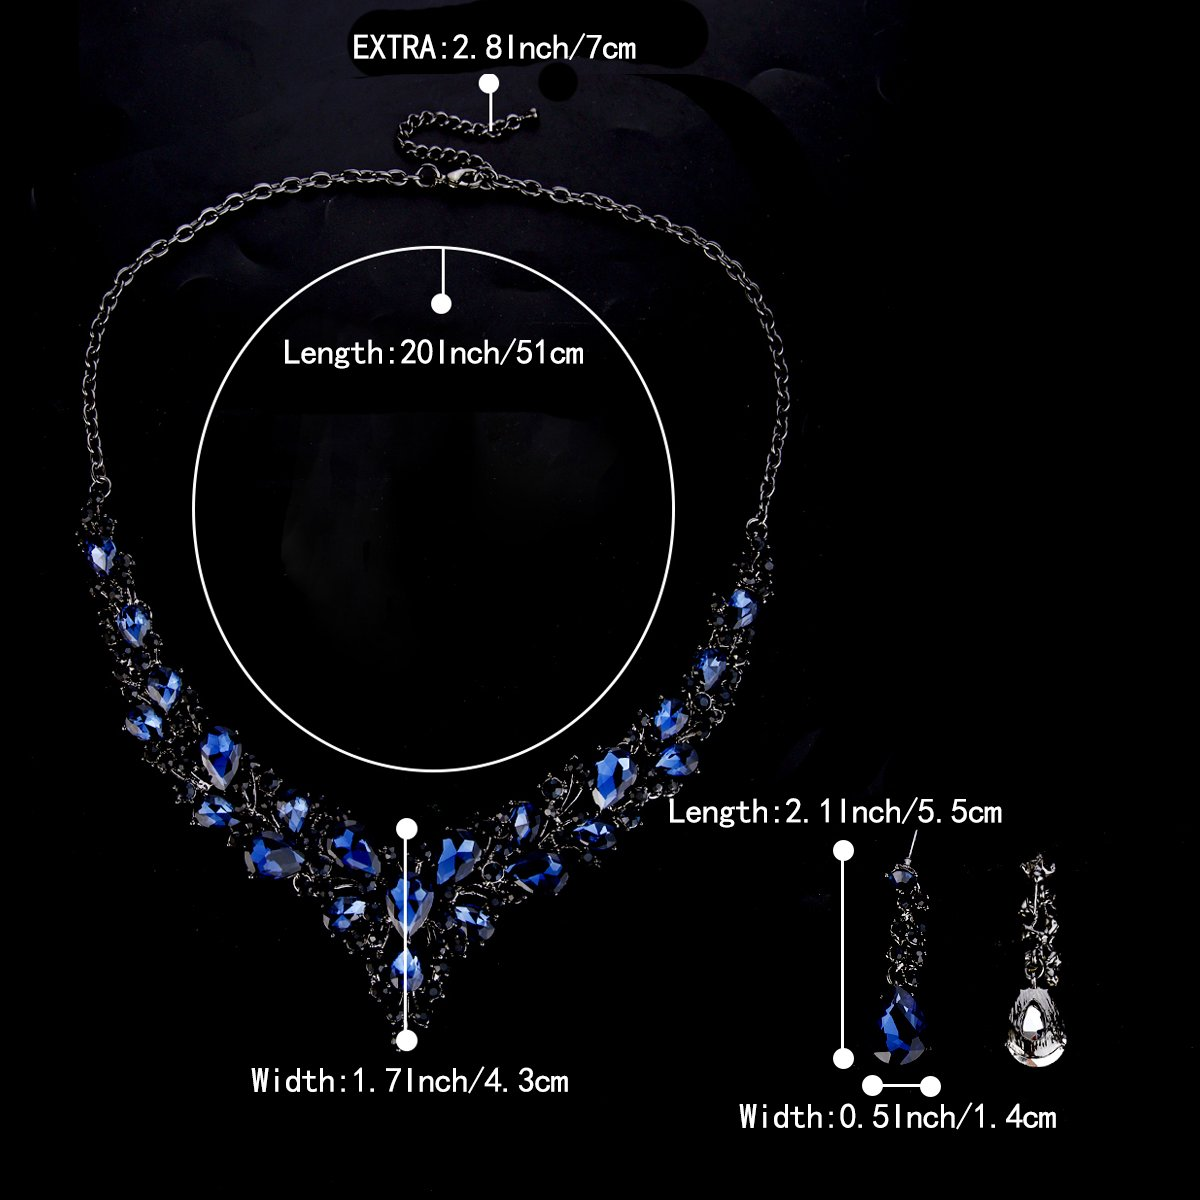 BriLove Wedding Bridal Necklace Earrings Jewelry Set for Women Austrian Crystal Teardrop Cluster Statement Necklace Dangle Earrings Set Navy Blue Sapphire Color Black-Silver-Tone by BriLove (Image #4)